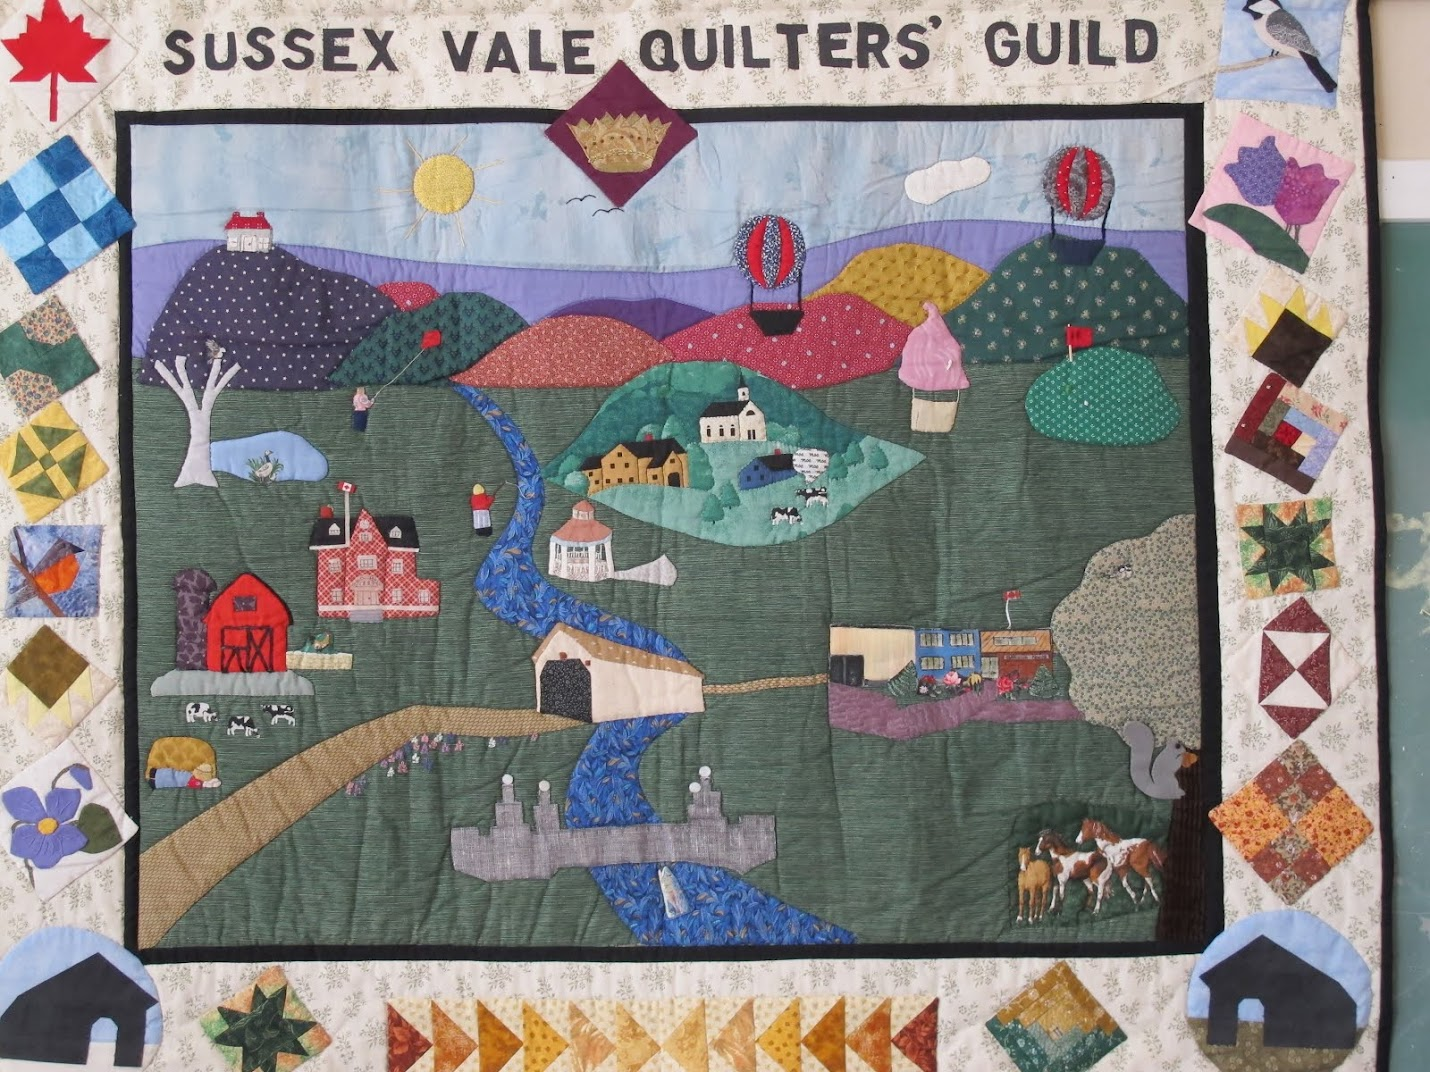 Sussex Vale Quilters' Guild